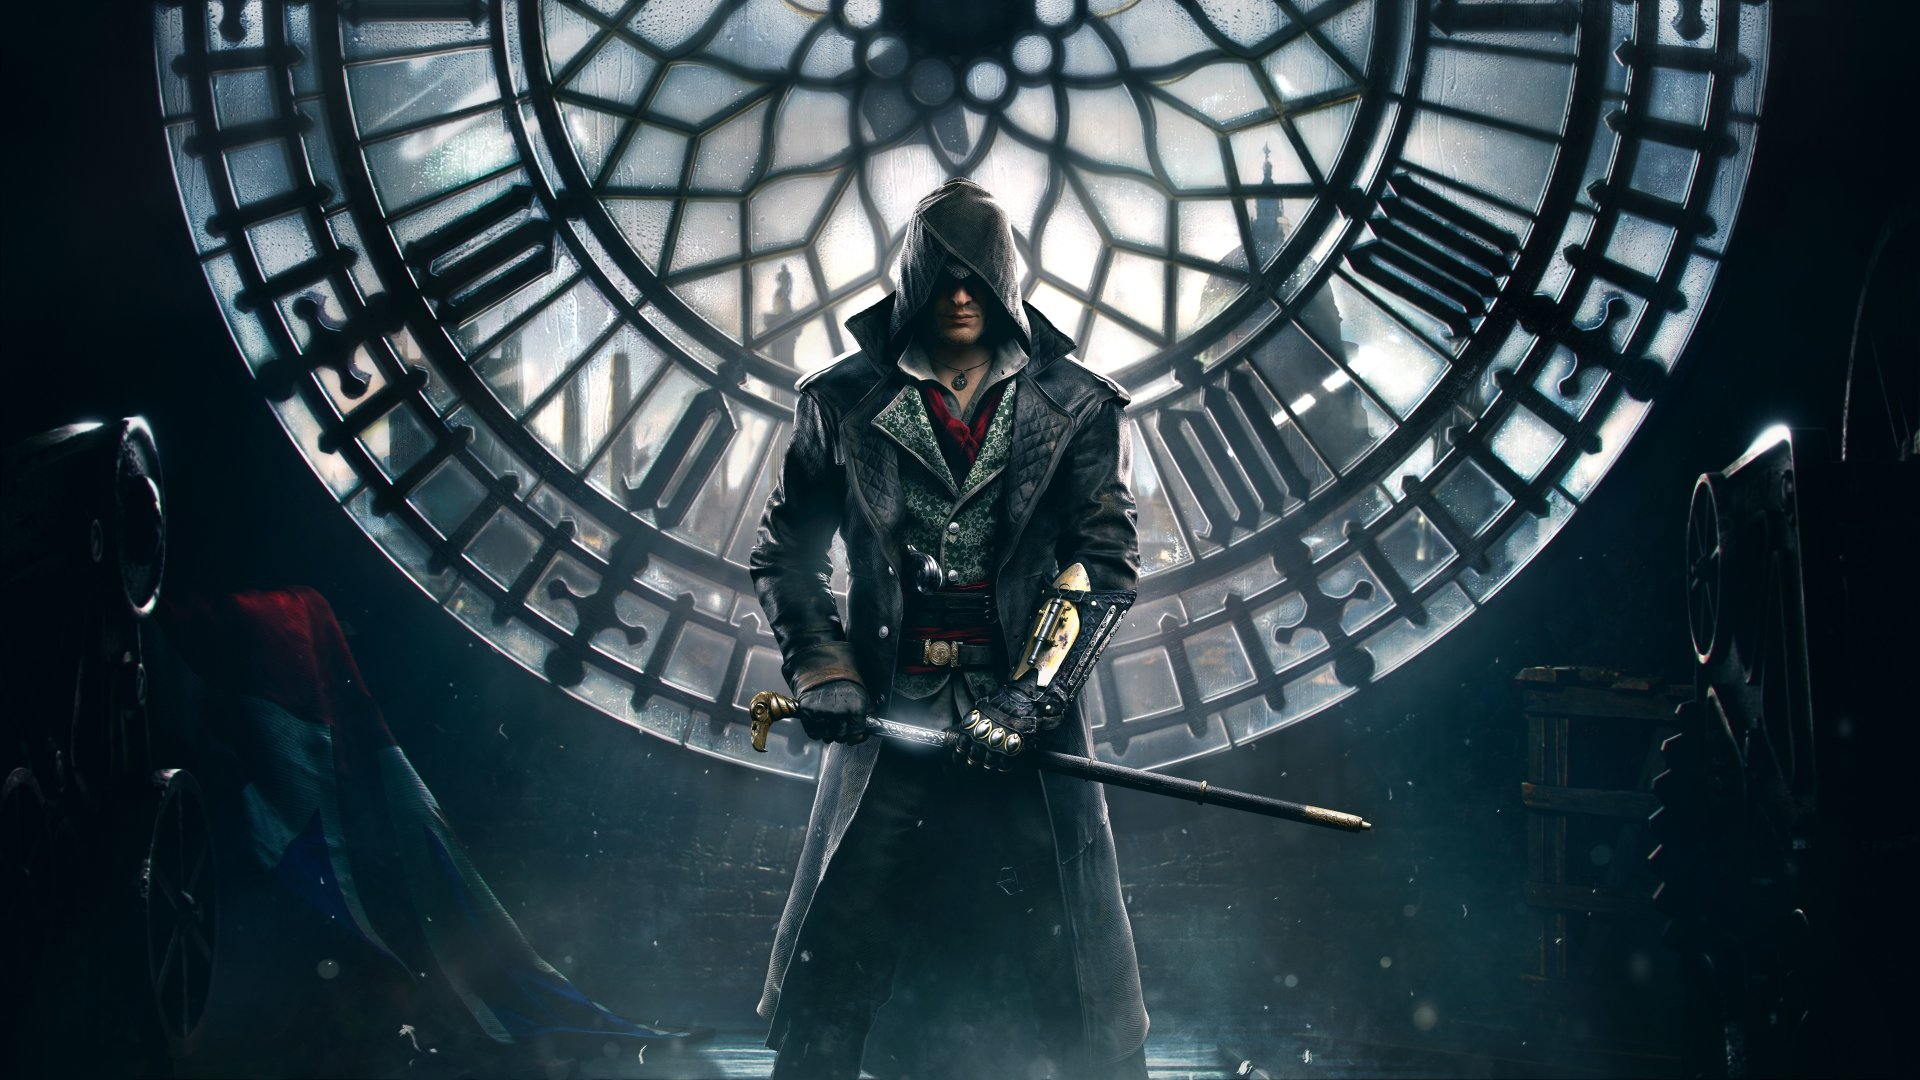 assassins creed syndicate wallpaper phone